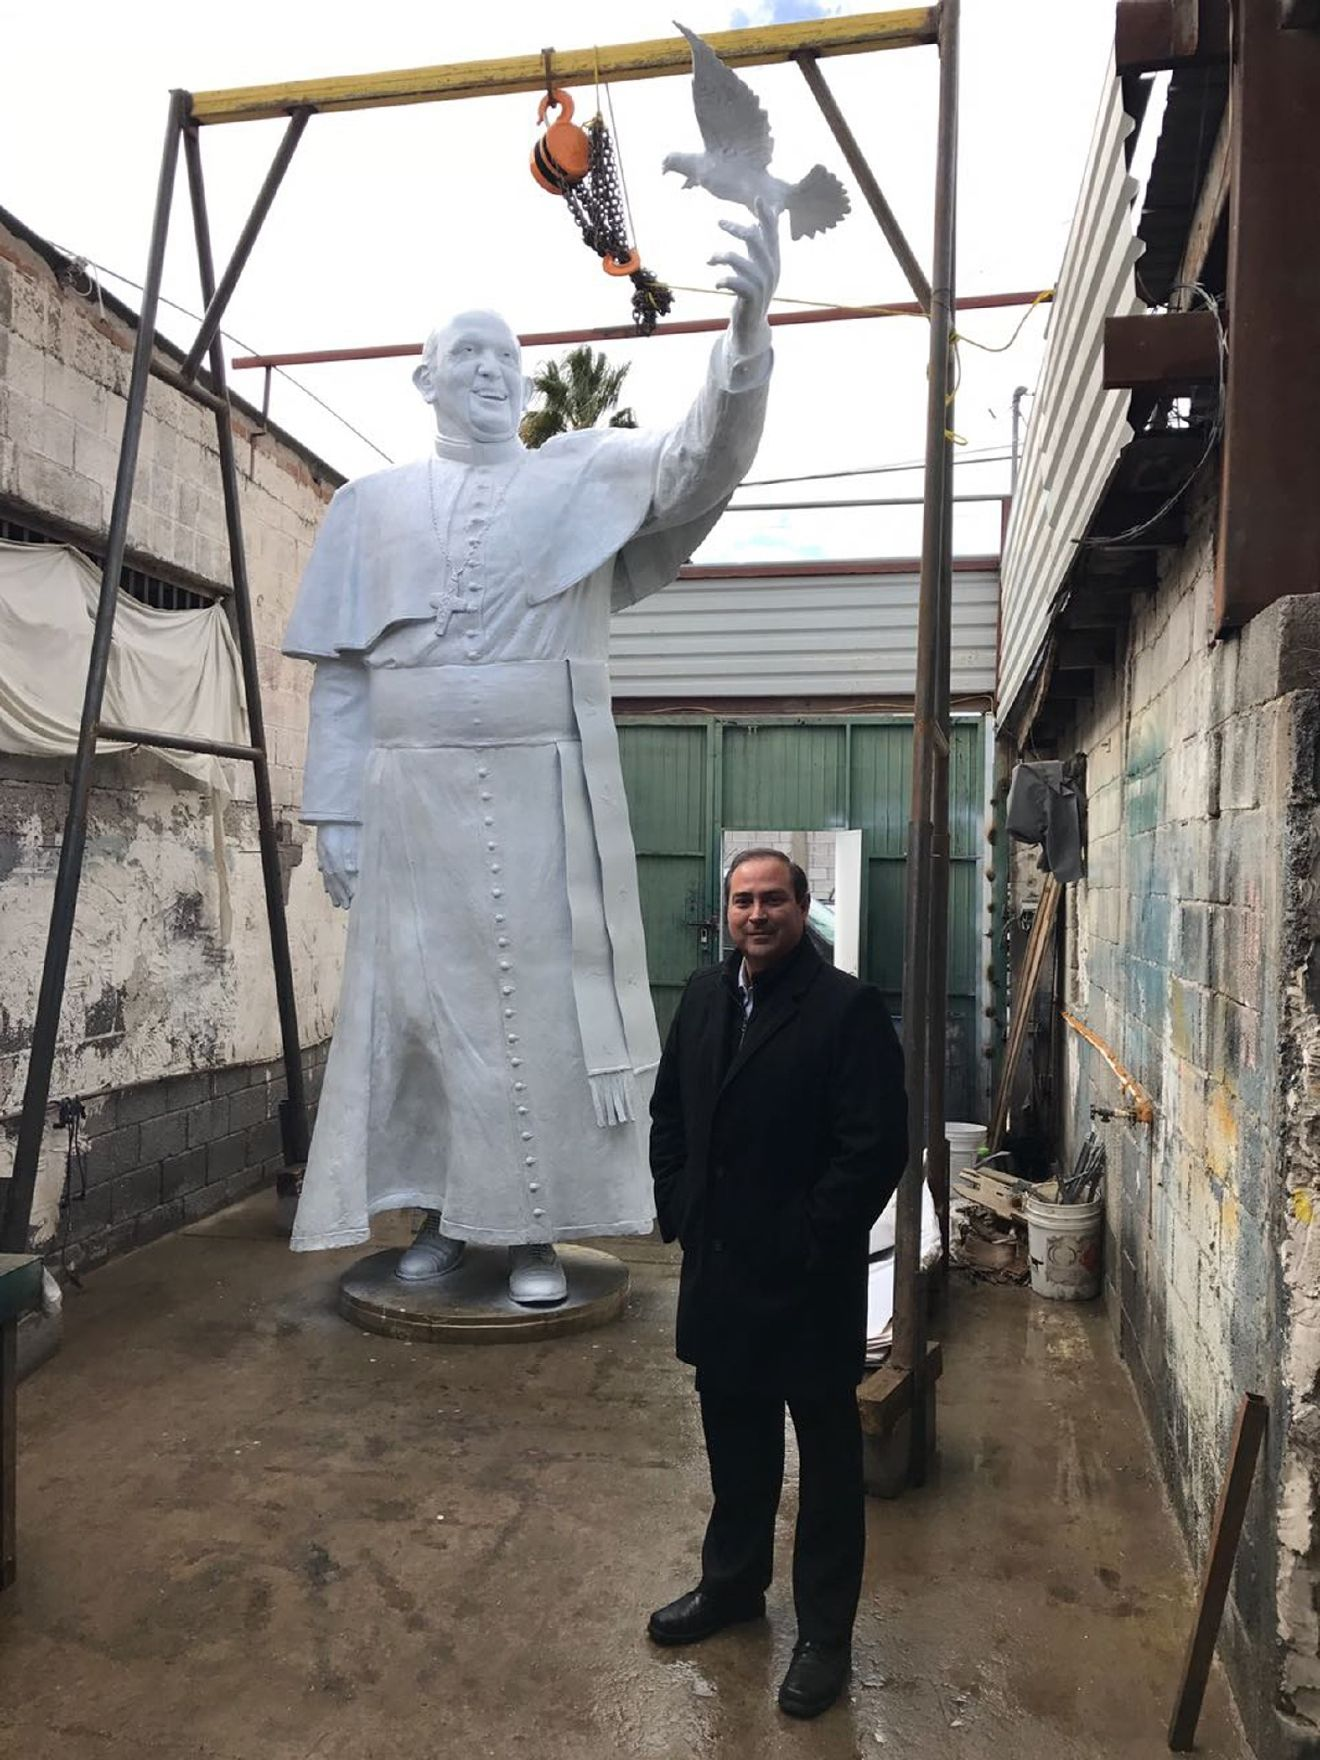 A massive statue of Pope Francis built by Juarez sculptor Pedro Francisco will be unveiled at 'El Punto' during a mass commemorating the pope's visit. (Courtesy: Salvador Perches)